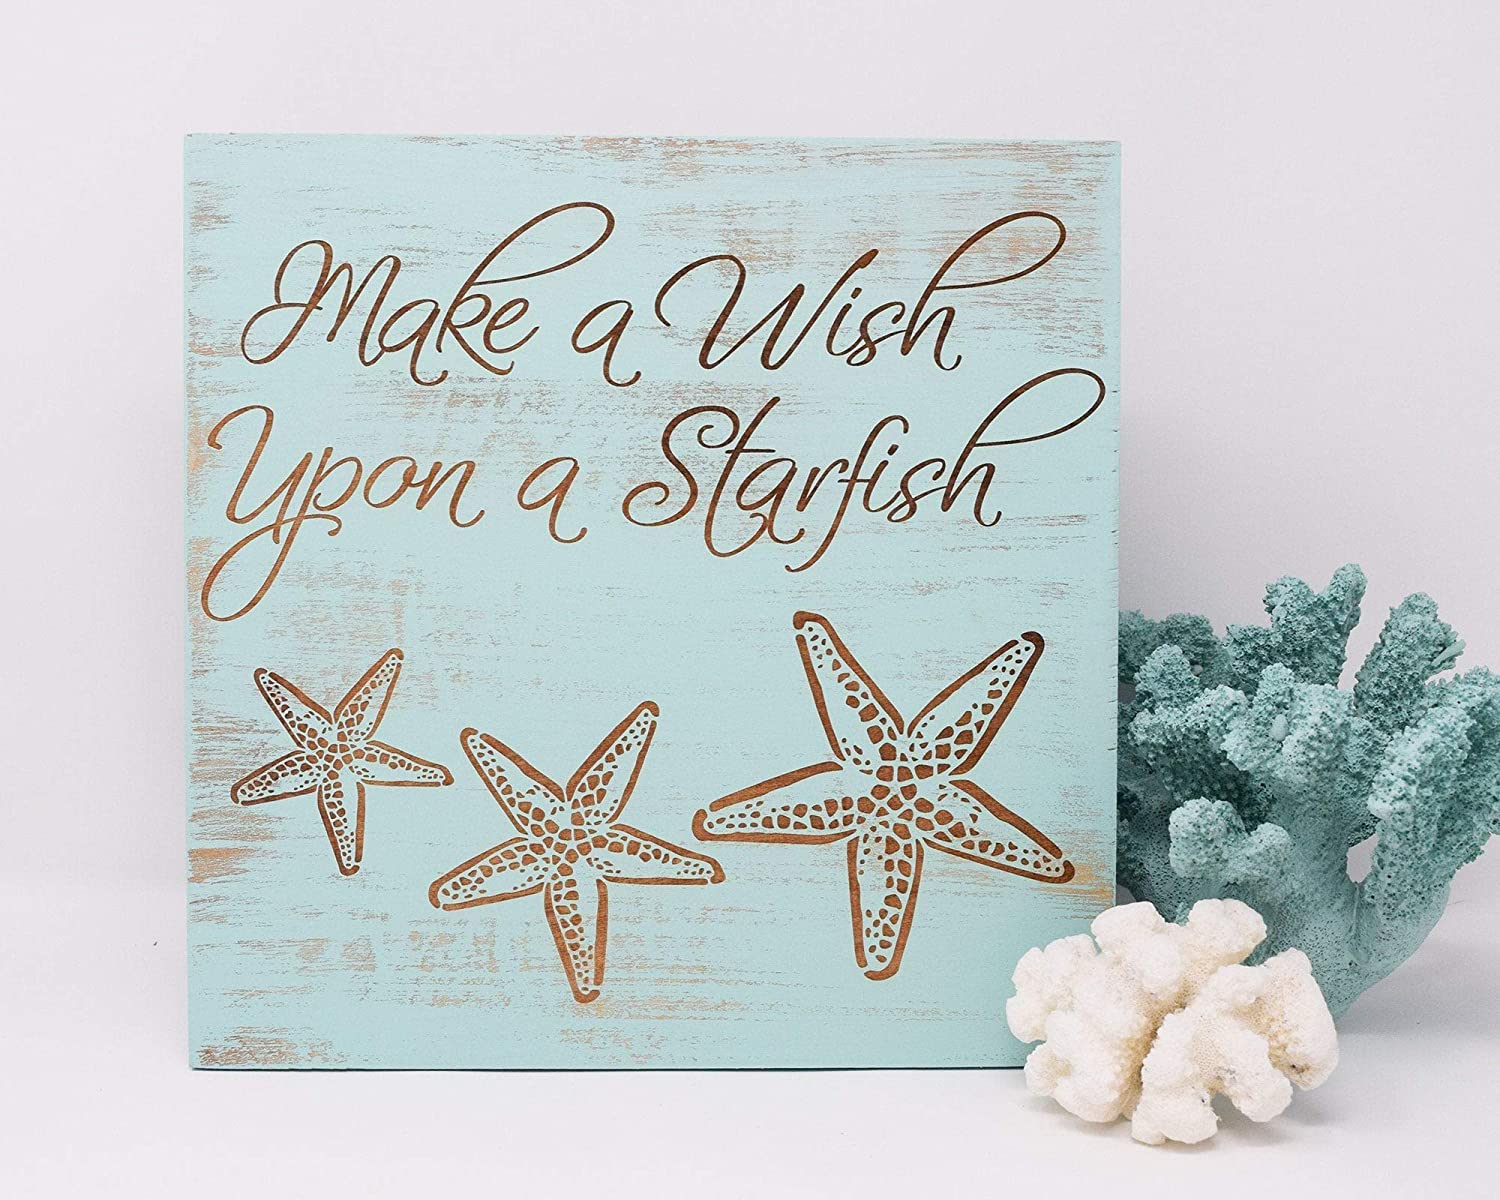 Make A Wish Upon A Starfish Wood Framed Sign Wall Hanging Signs, Farmhouse Family Wall Art Sign for Home Decor, Living Room and Kitchen, 12x12inch